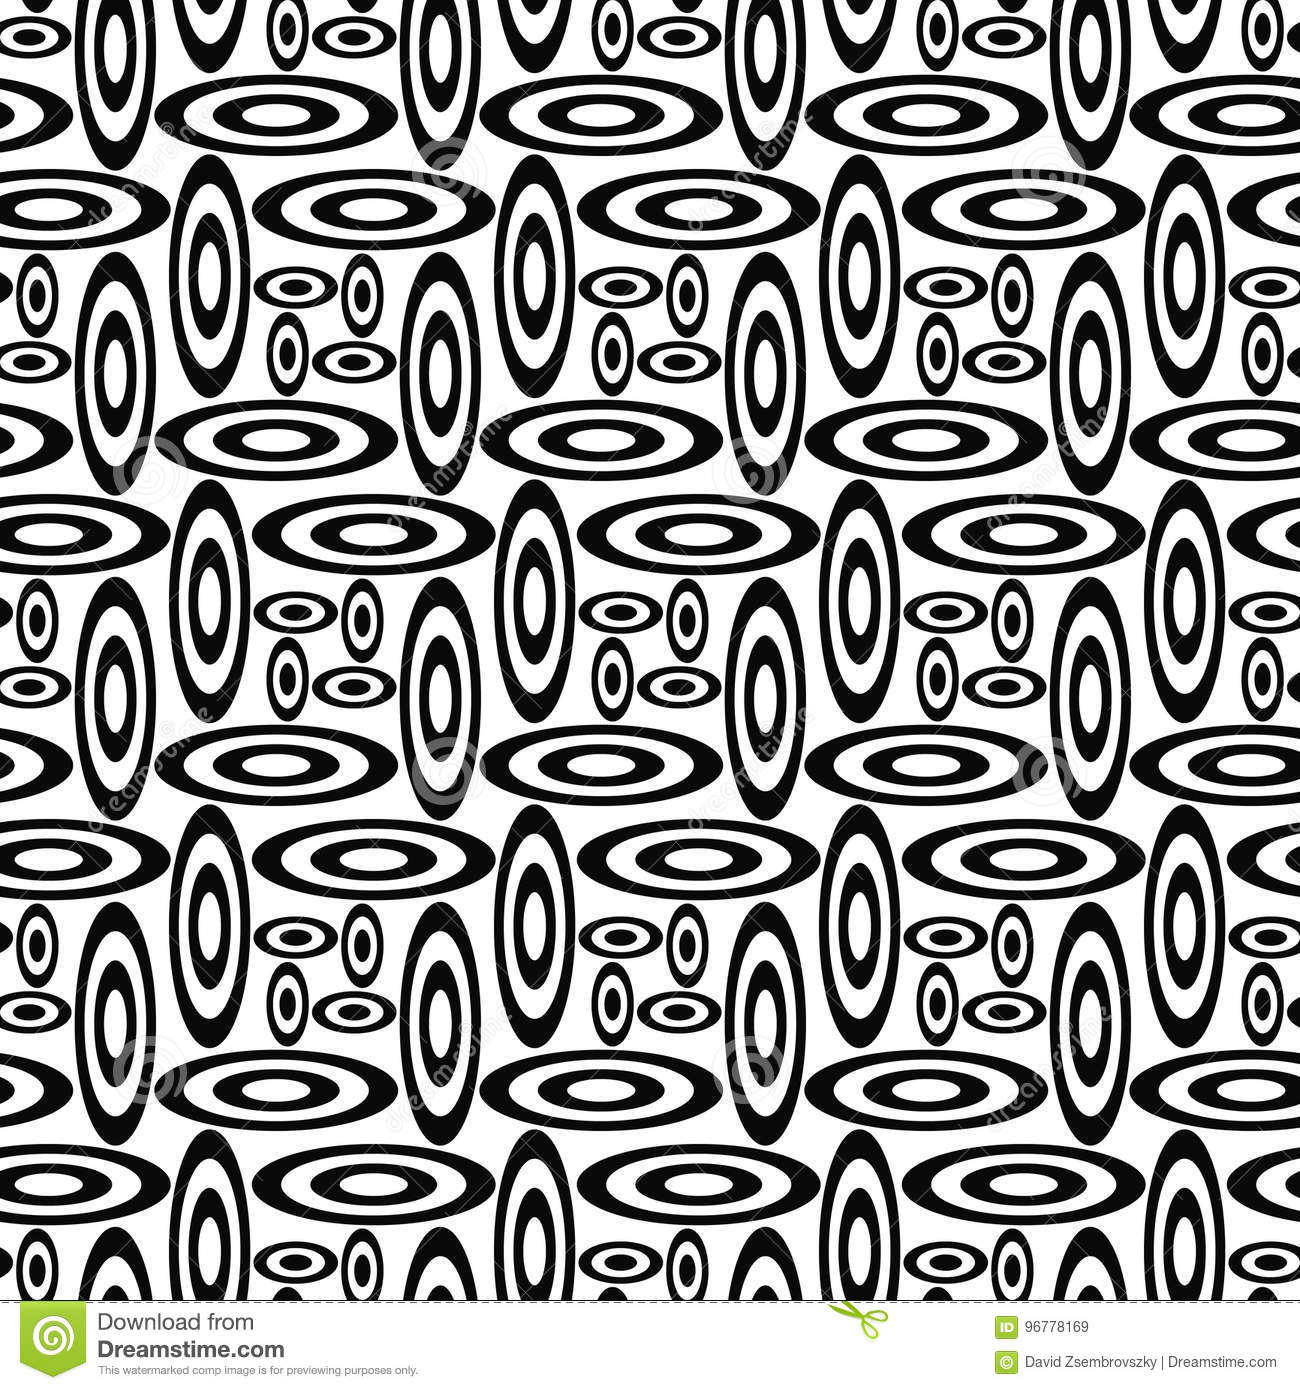 Repeating Black And White Ellipse Pattern Stock Vector ...